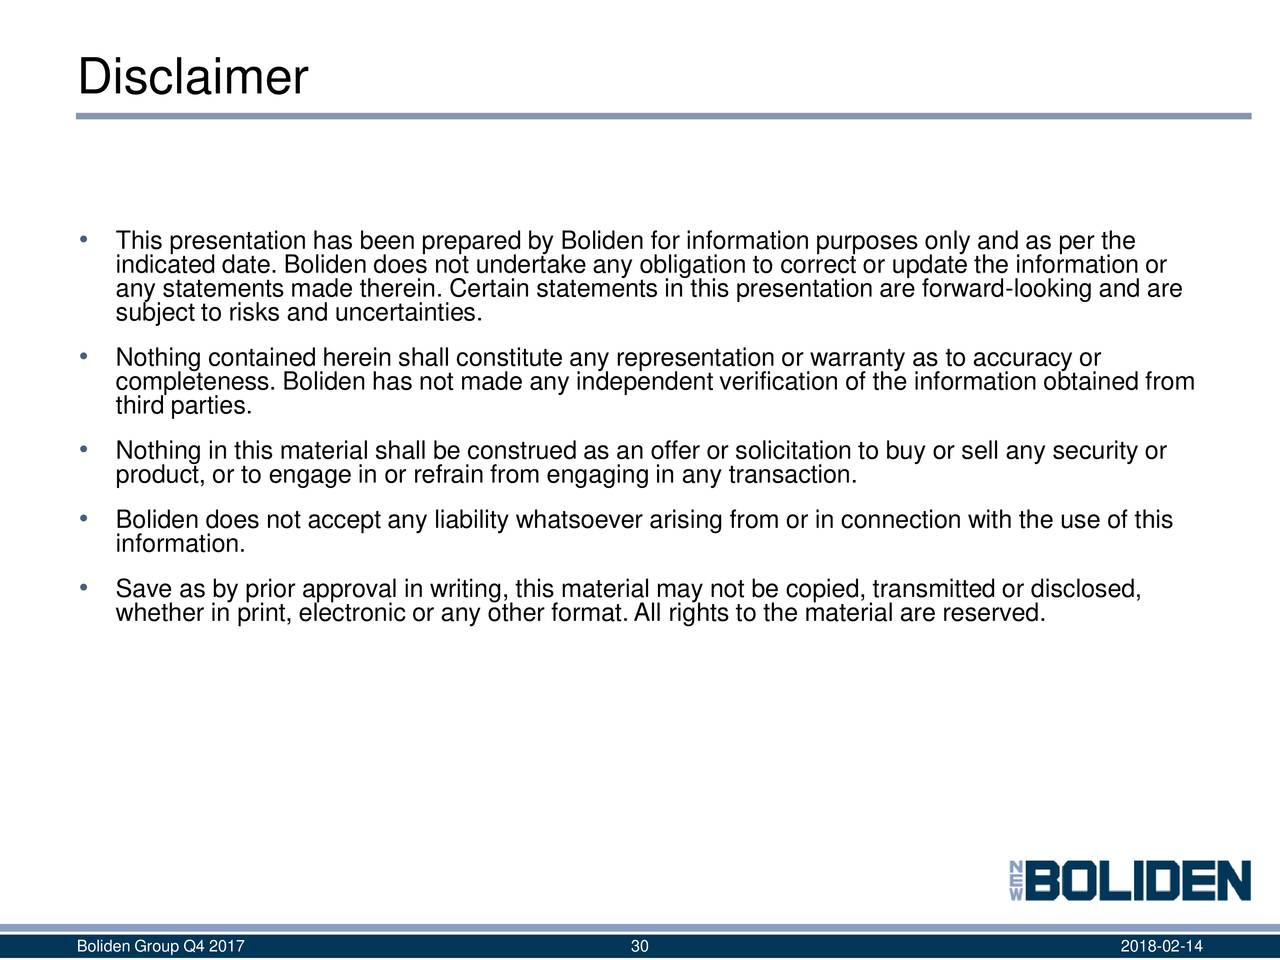 Boliden ab adr 2017 q4 results earnings call slides for Earnings disclaimer template